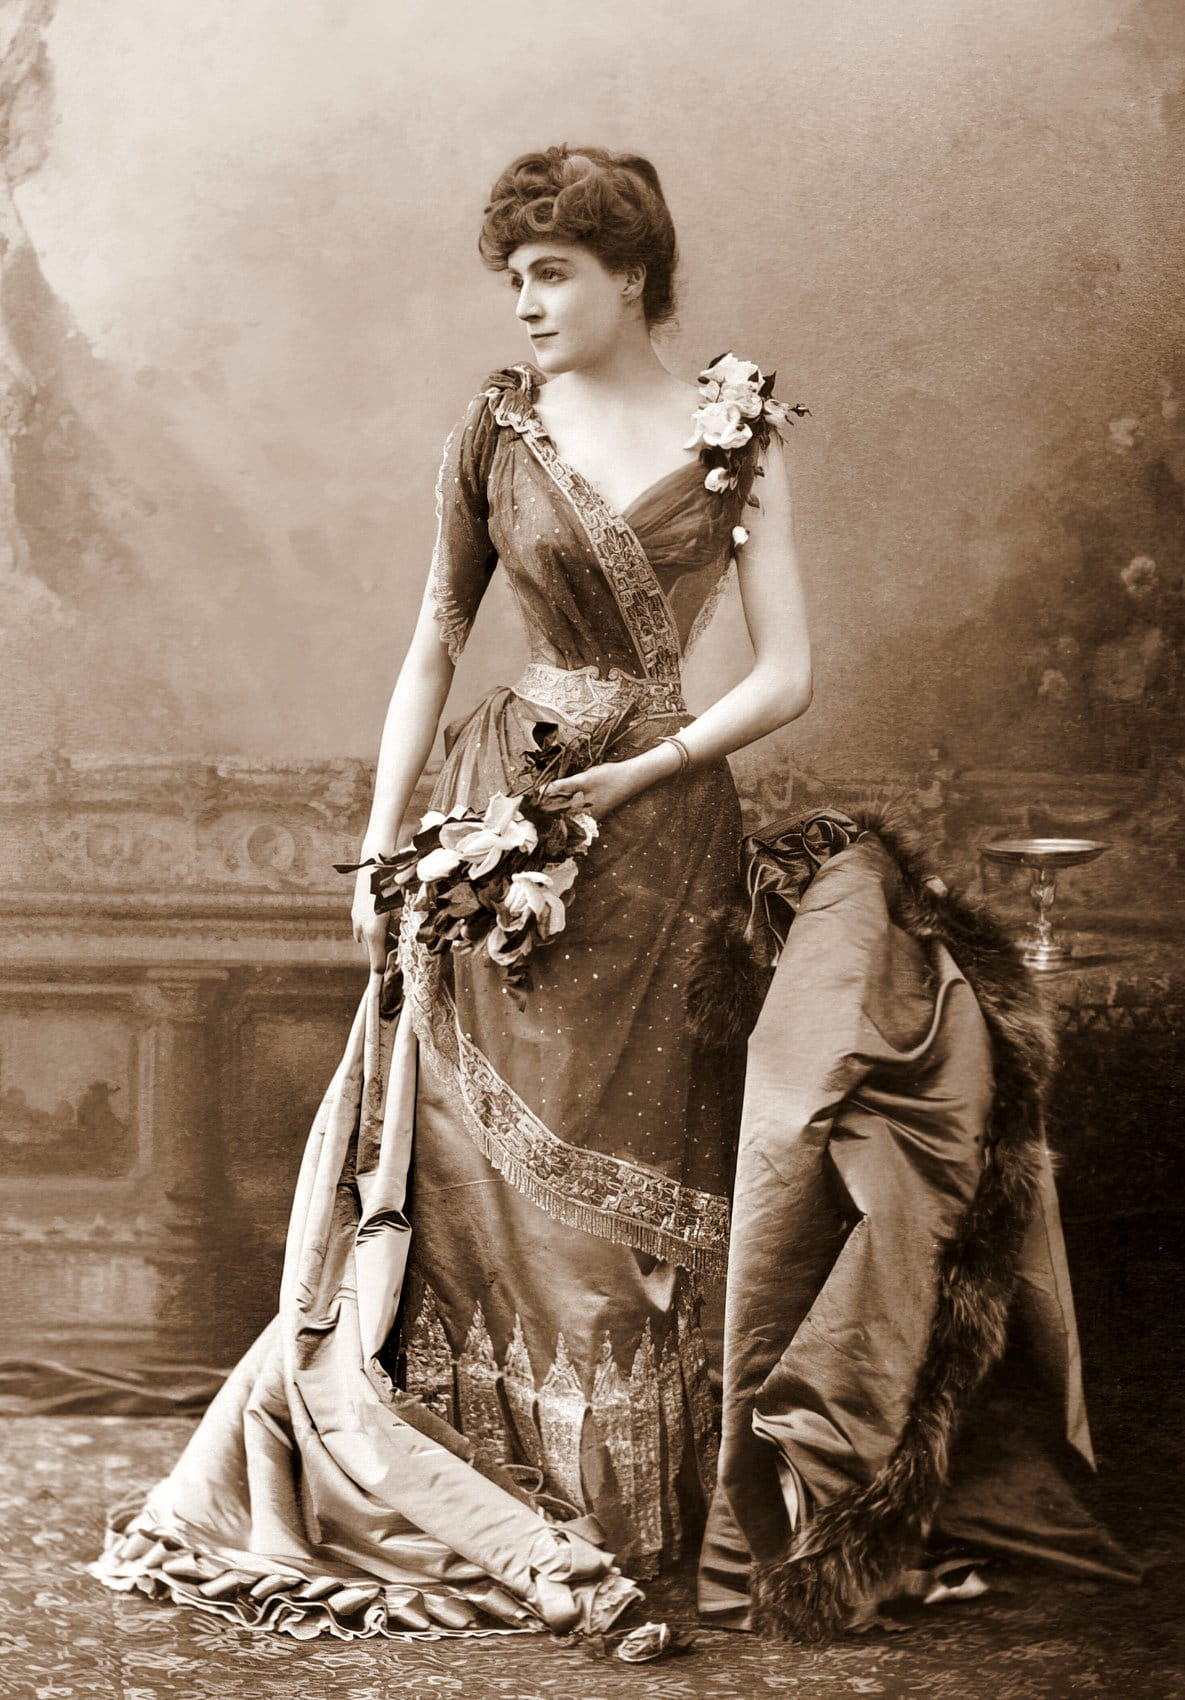 Antique photo of vintage actress in dress over corset